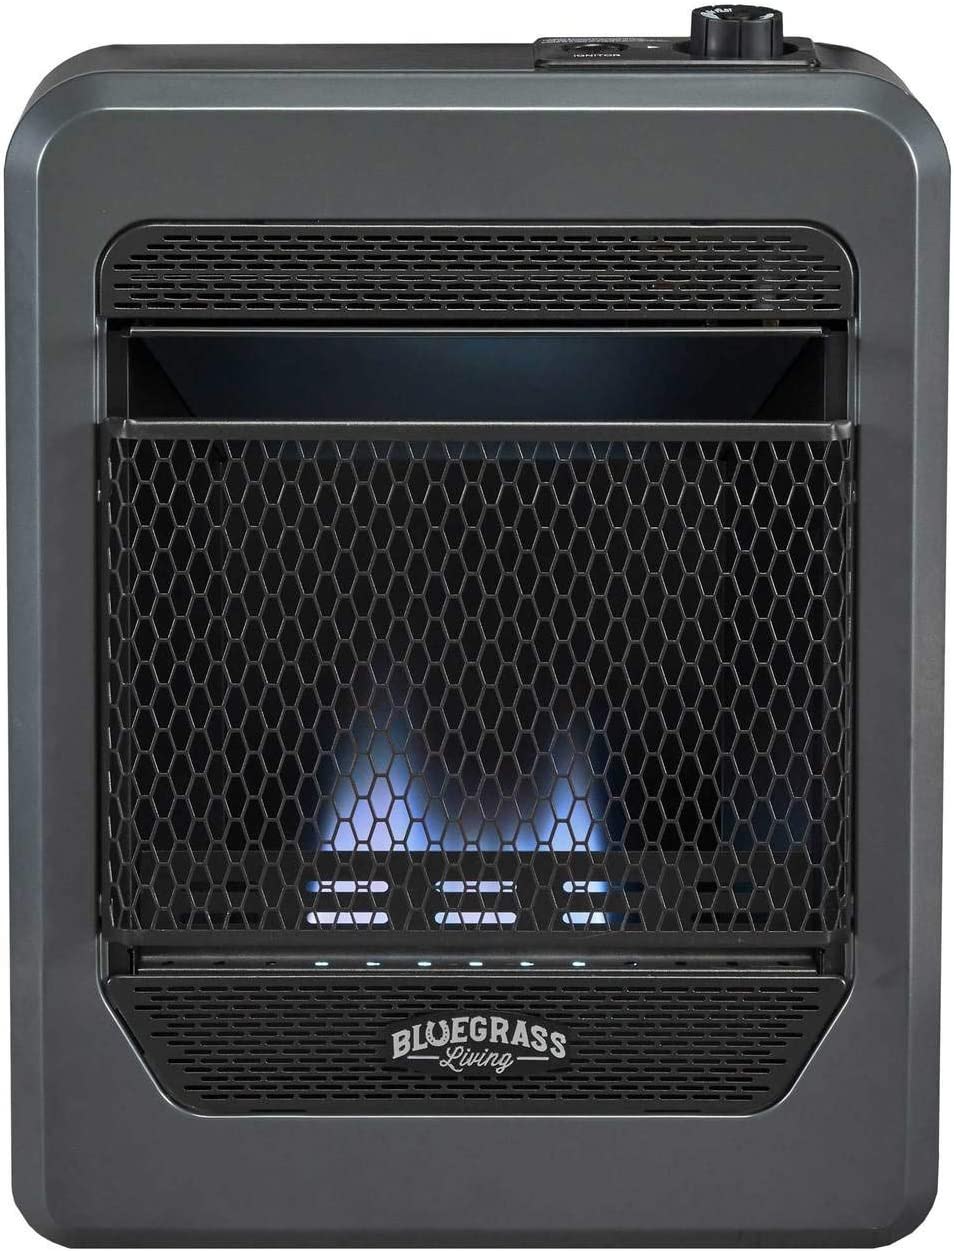 Bluegrass Living B10TPB-B Vent Free Blue Flame Gas Space Heater with Base Feet-10,000, T-Stat Control, 10000 BTU, Black